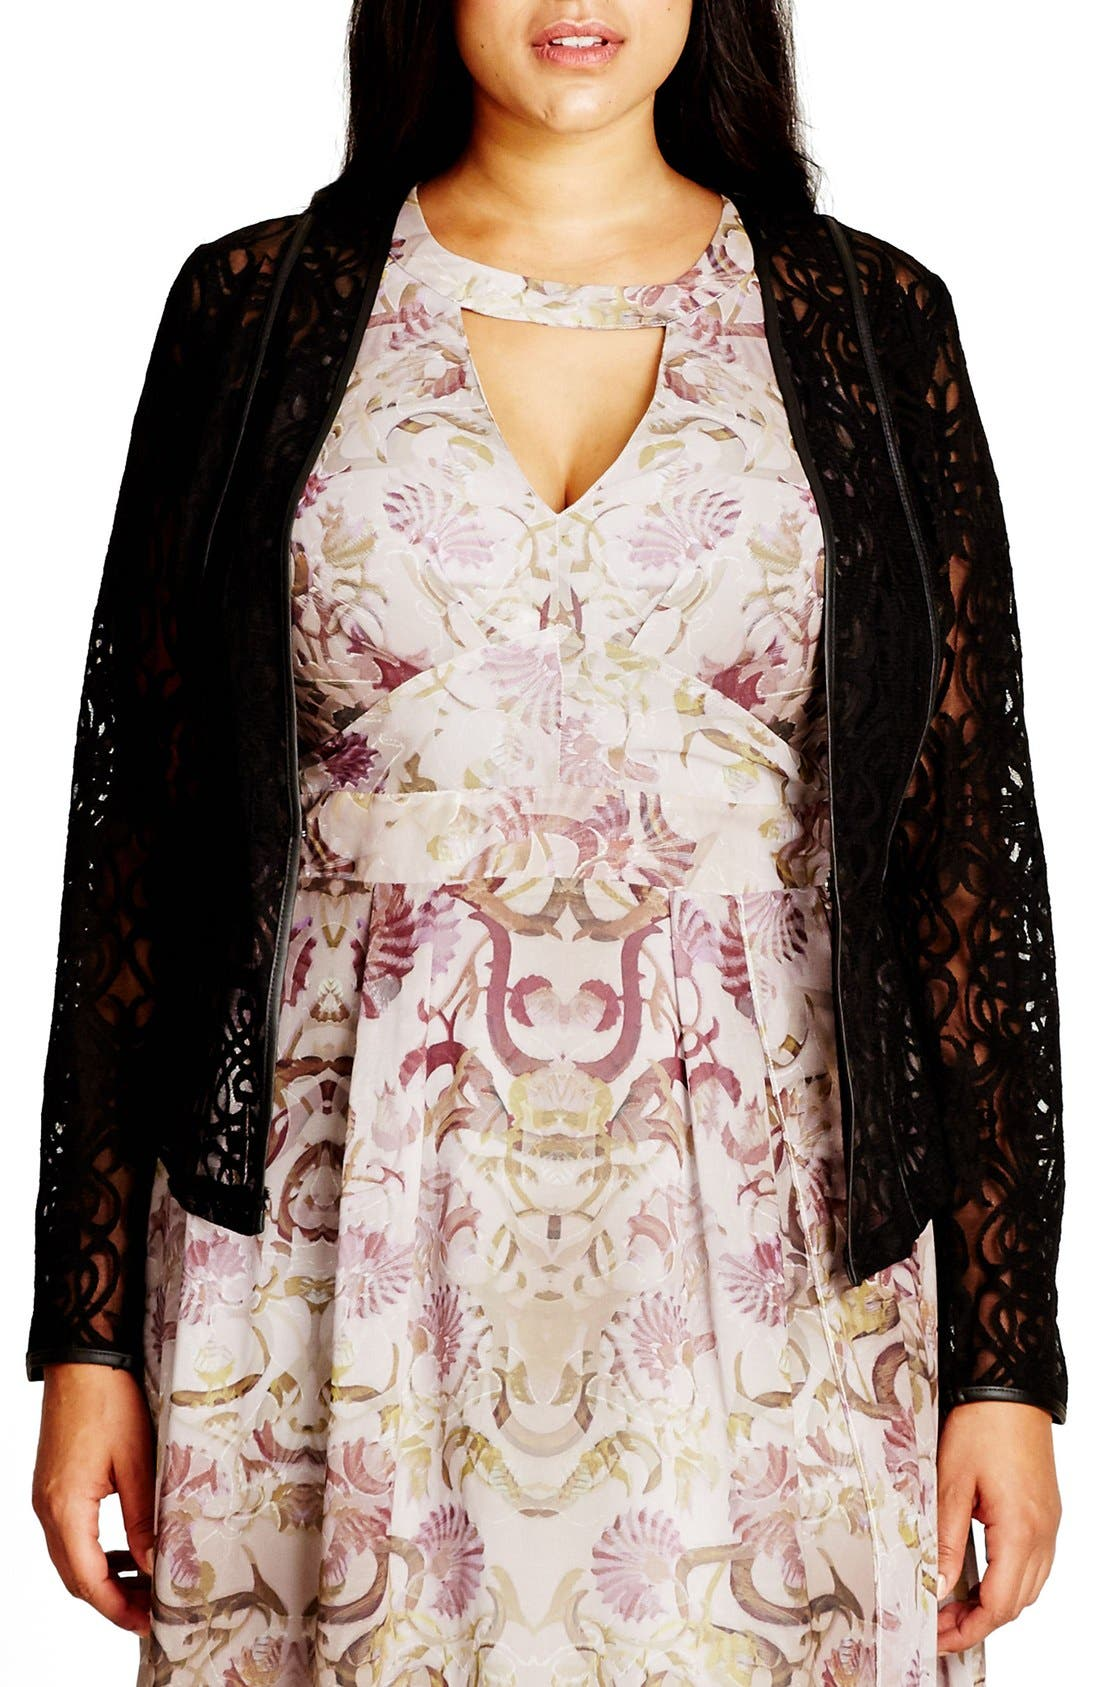 CITY CHIC Elegant Lace Jacket